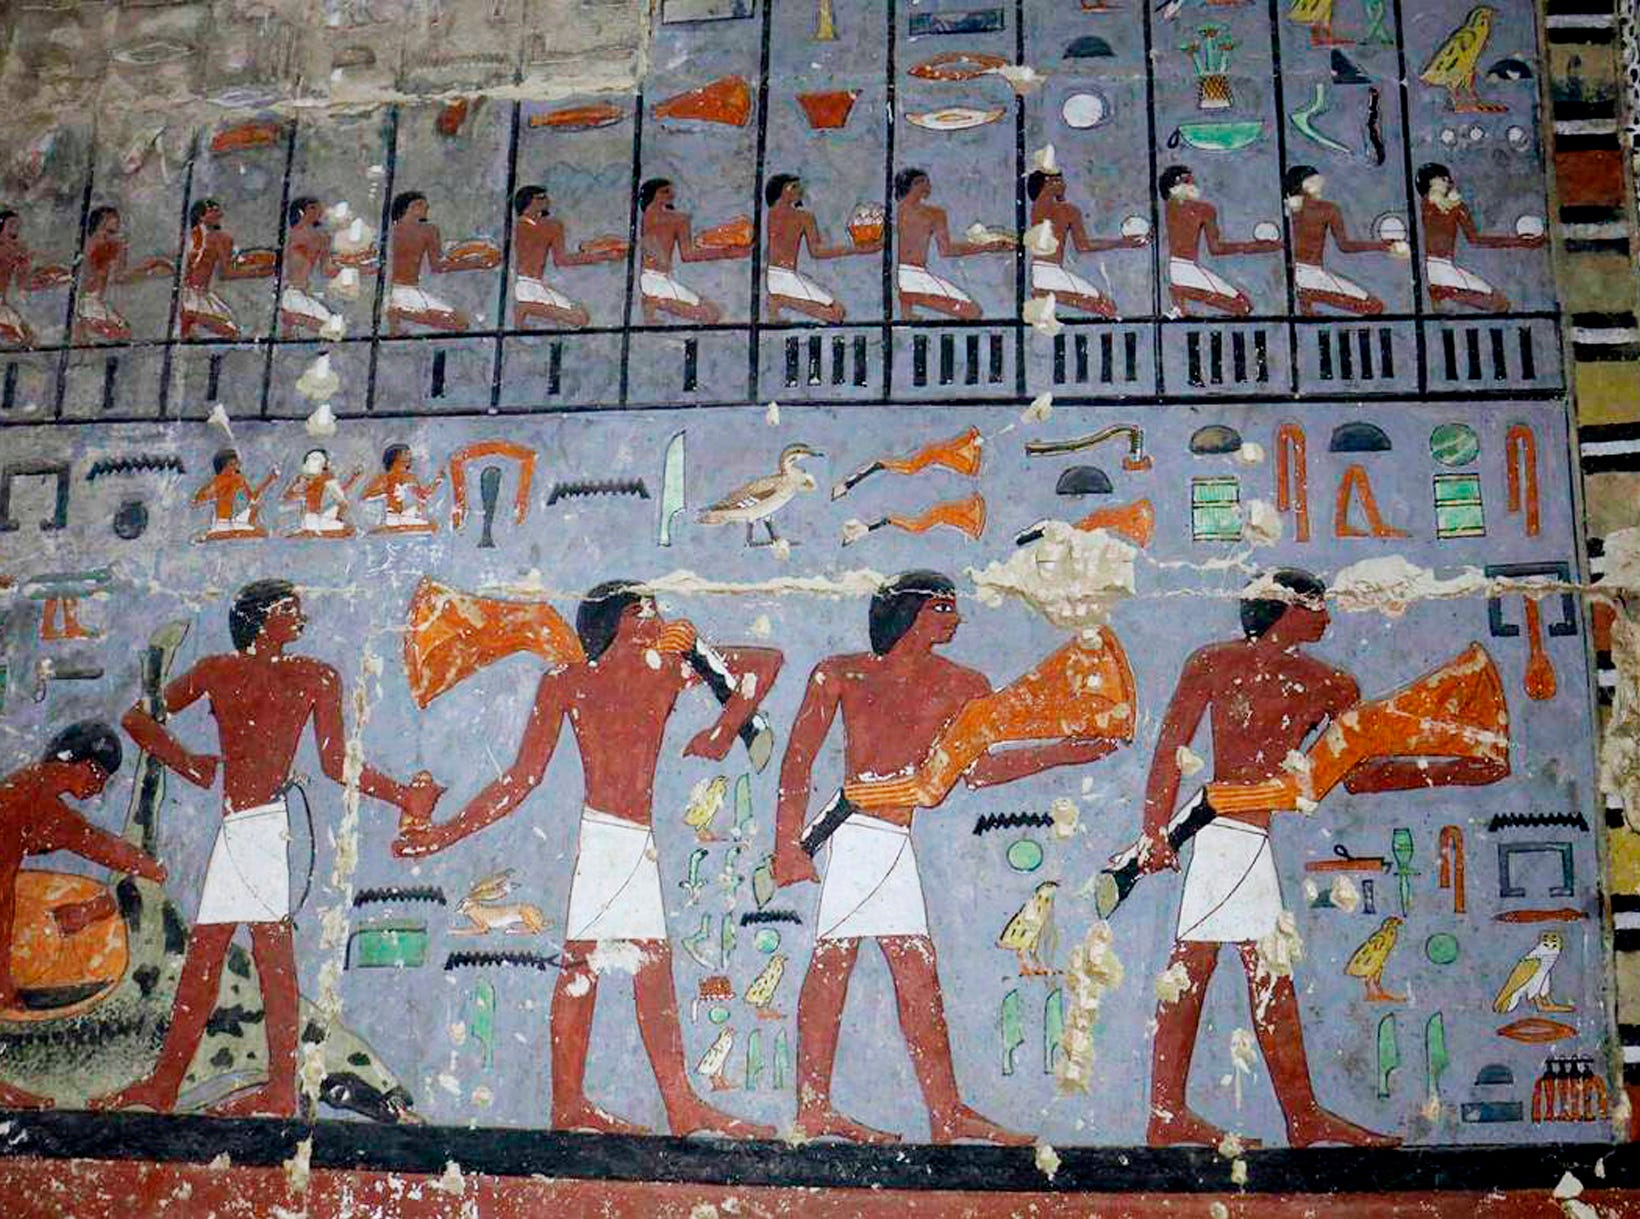 This photo released Tuesday, April 2, 2019, by the Egyptian Ministry of Antiquities, shows pharaonic paintings in the tomb of a noble from the time of one of the earliest pharaonic dynasties, in Saqqara, Giza, Egypt. The Antiquities Ministry said Tuesday that the tomb uncovered in the Saqqara pyramids complex outside Cairo dates to the 5th Dynasty, which ruled the Nile Valley from 2388-2356 B.C. Egypt frequently touts new archaeological finds, hoping to encourage tourism.